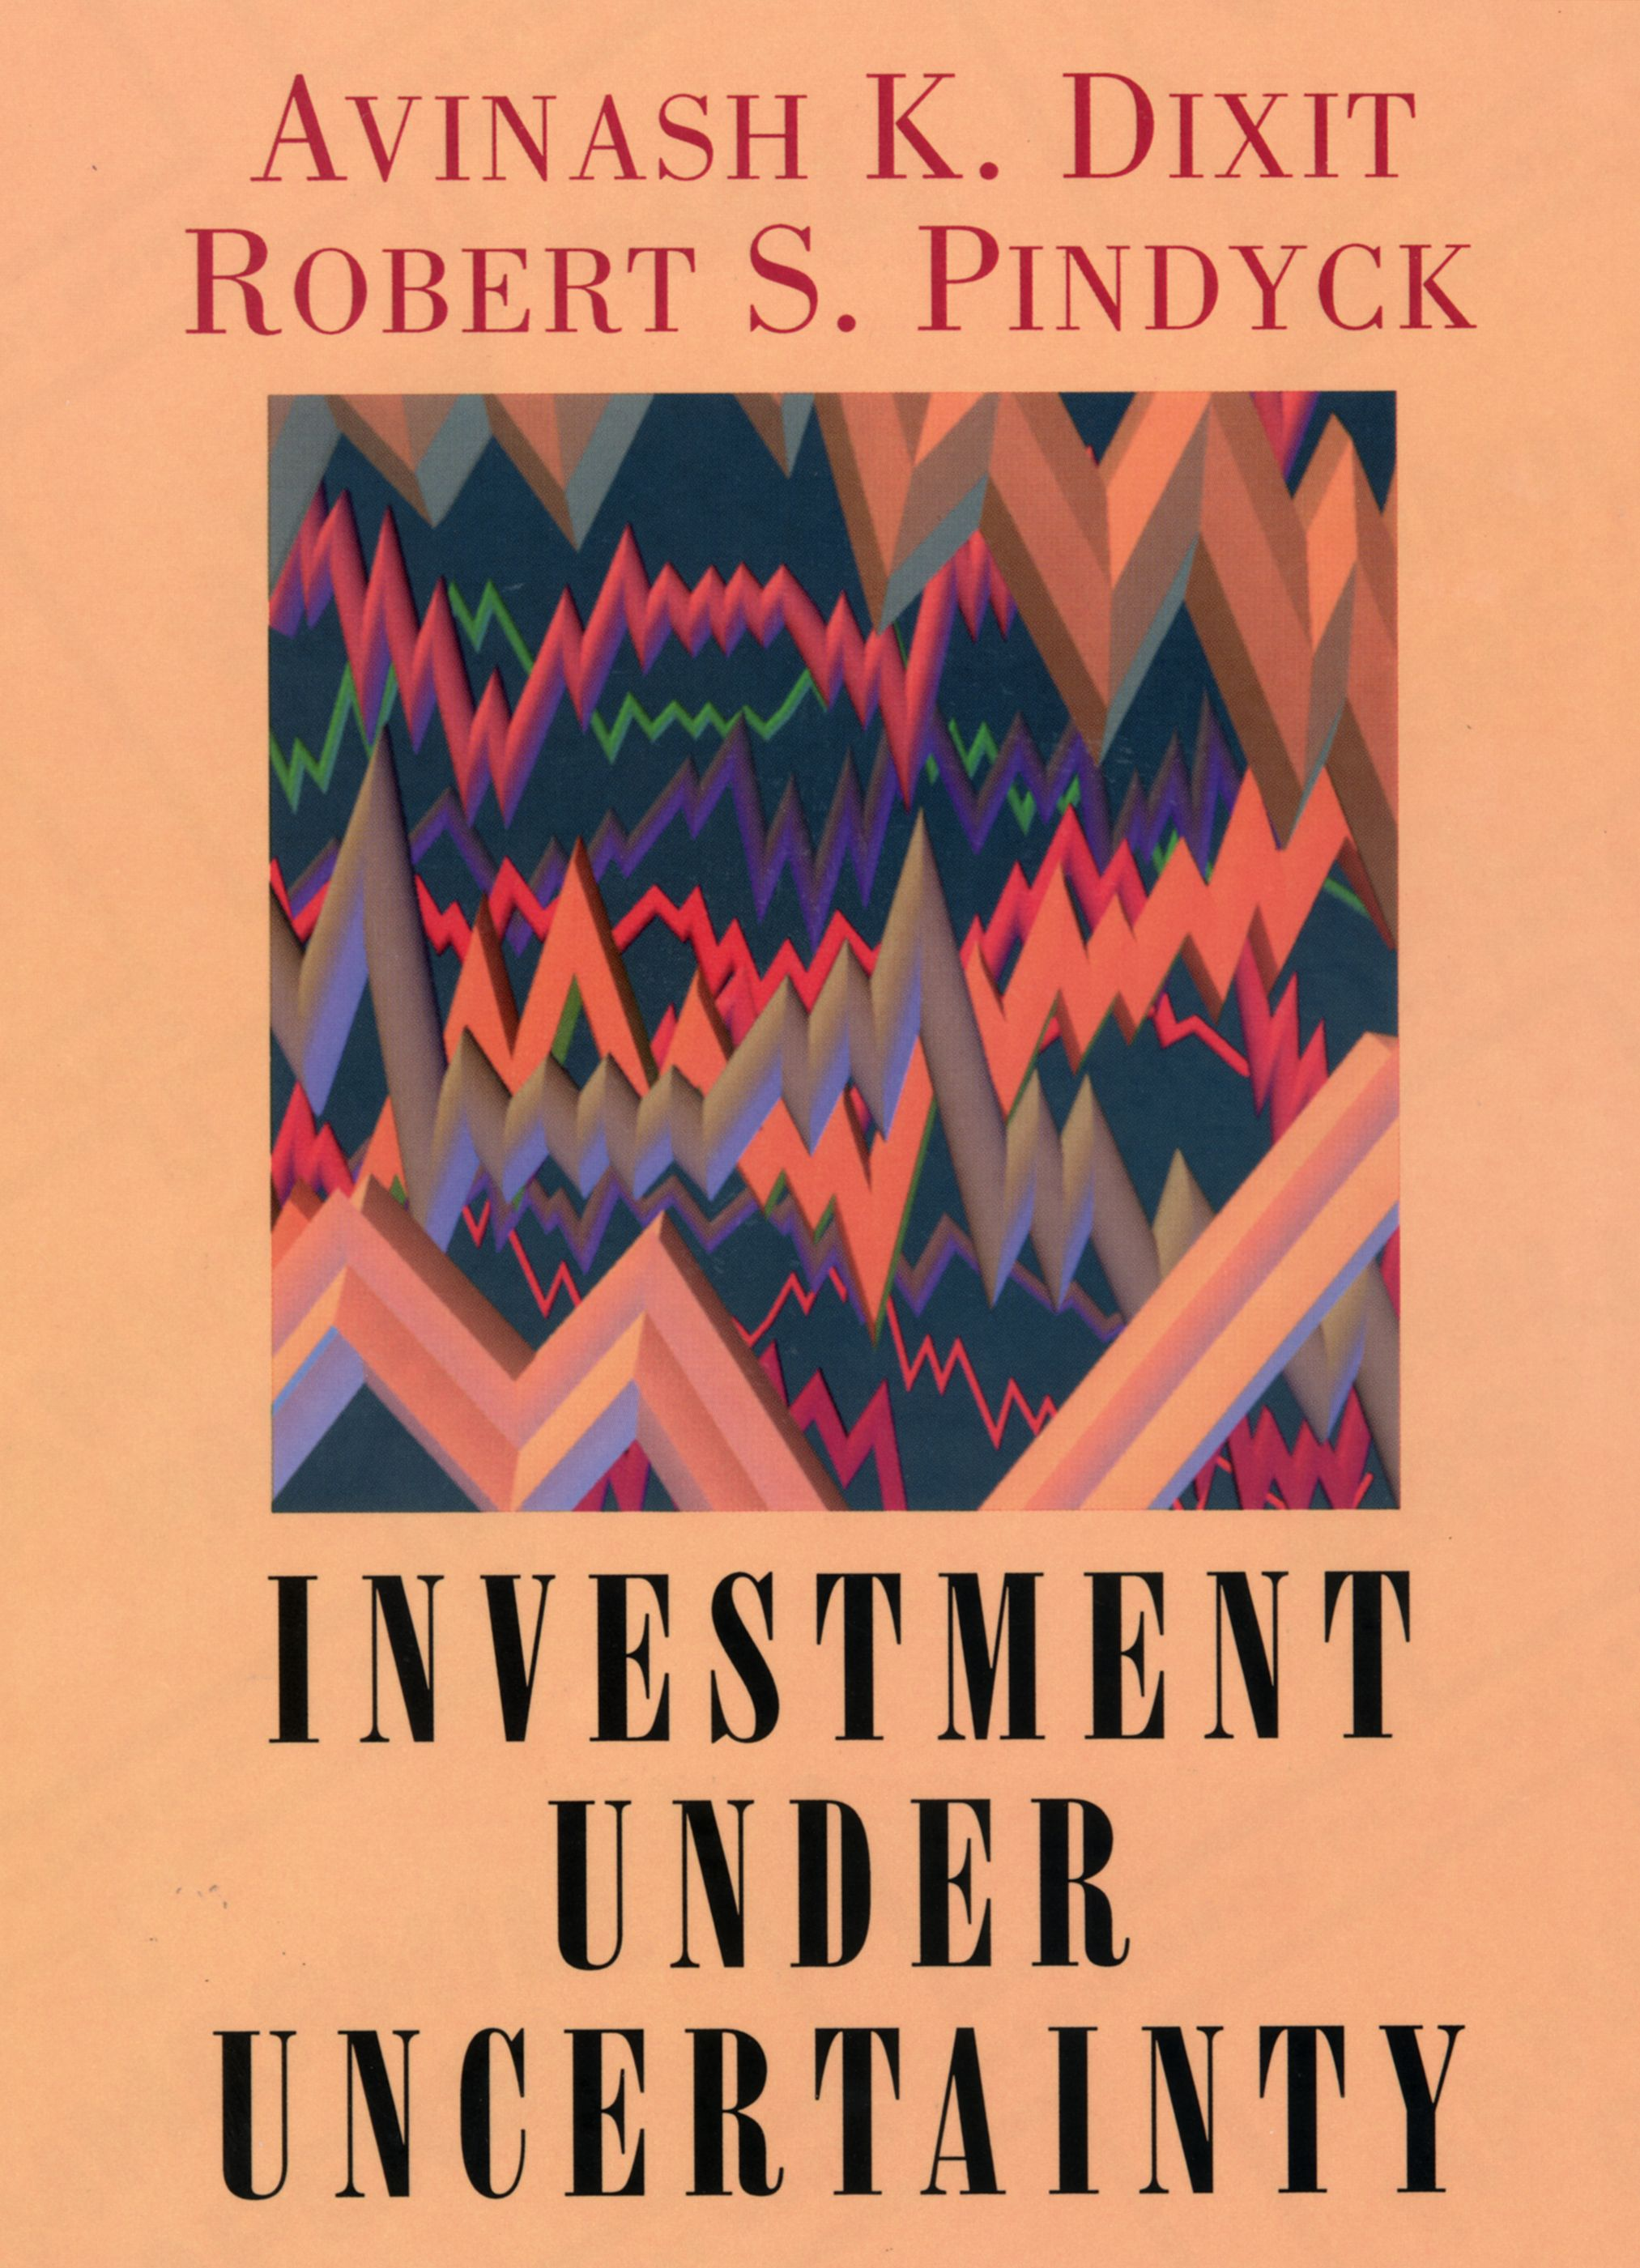 Download Ebook Investment under Uncertainty by Robert K. Dixit Pdf